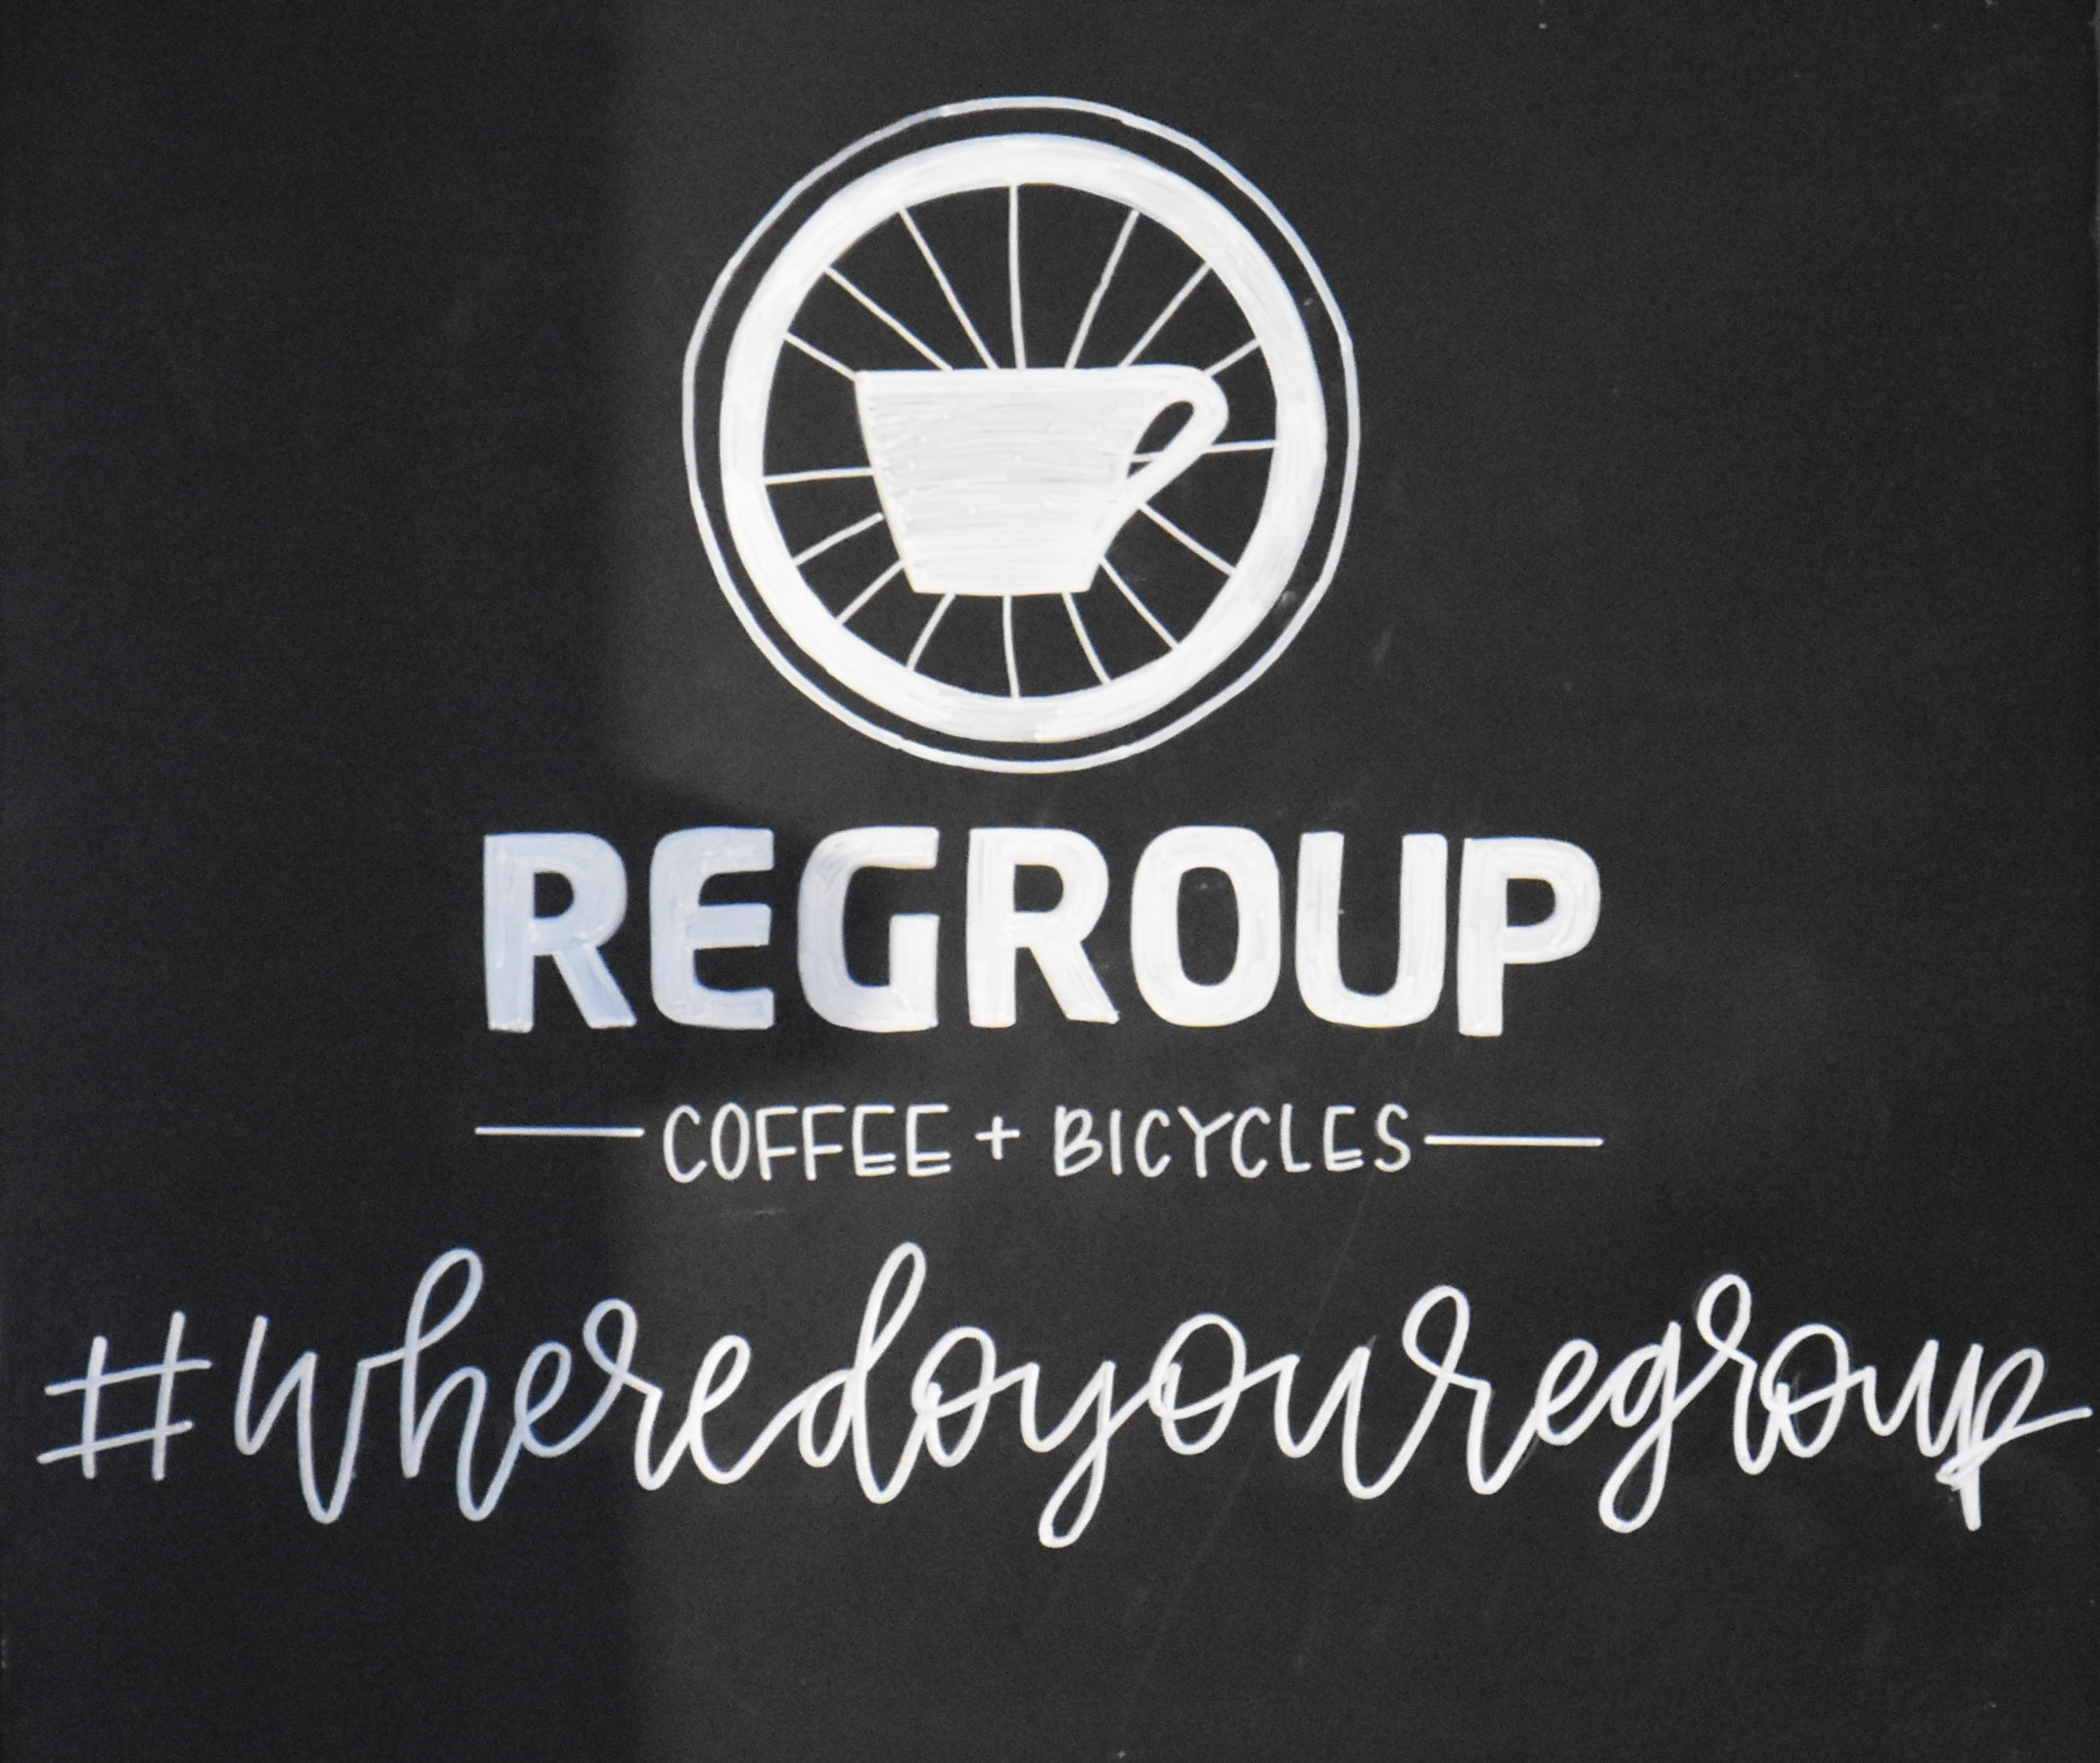 The Regroup Coffee + Bicycles logo, along with its slogan #wheredoyouregroup